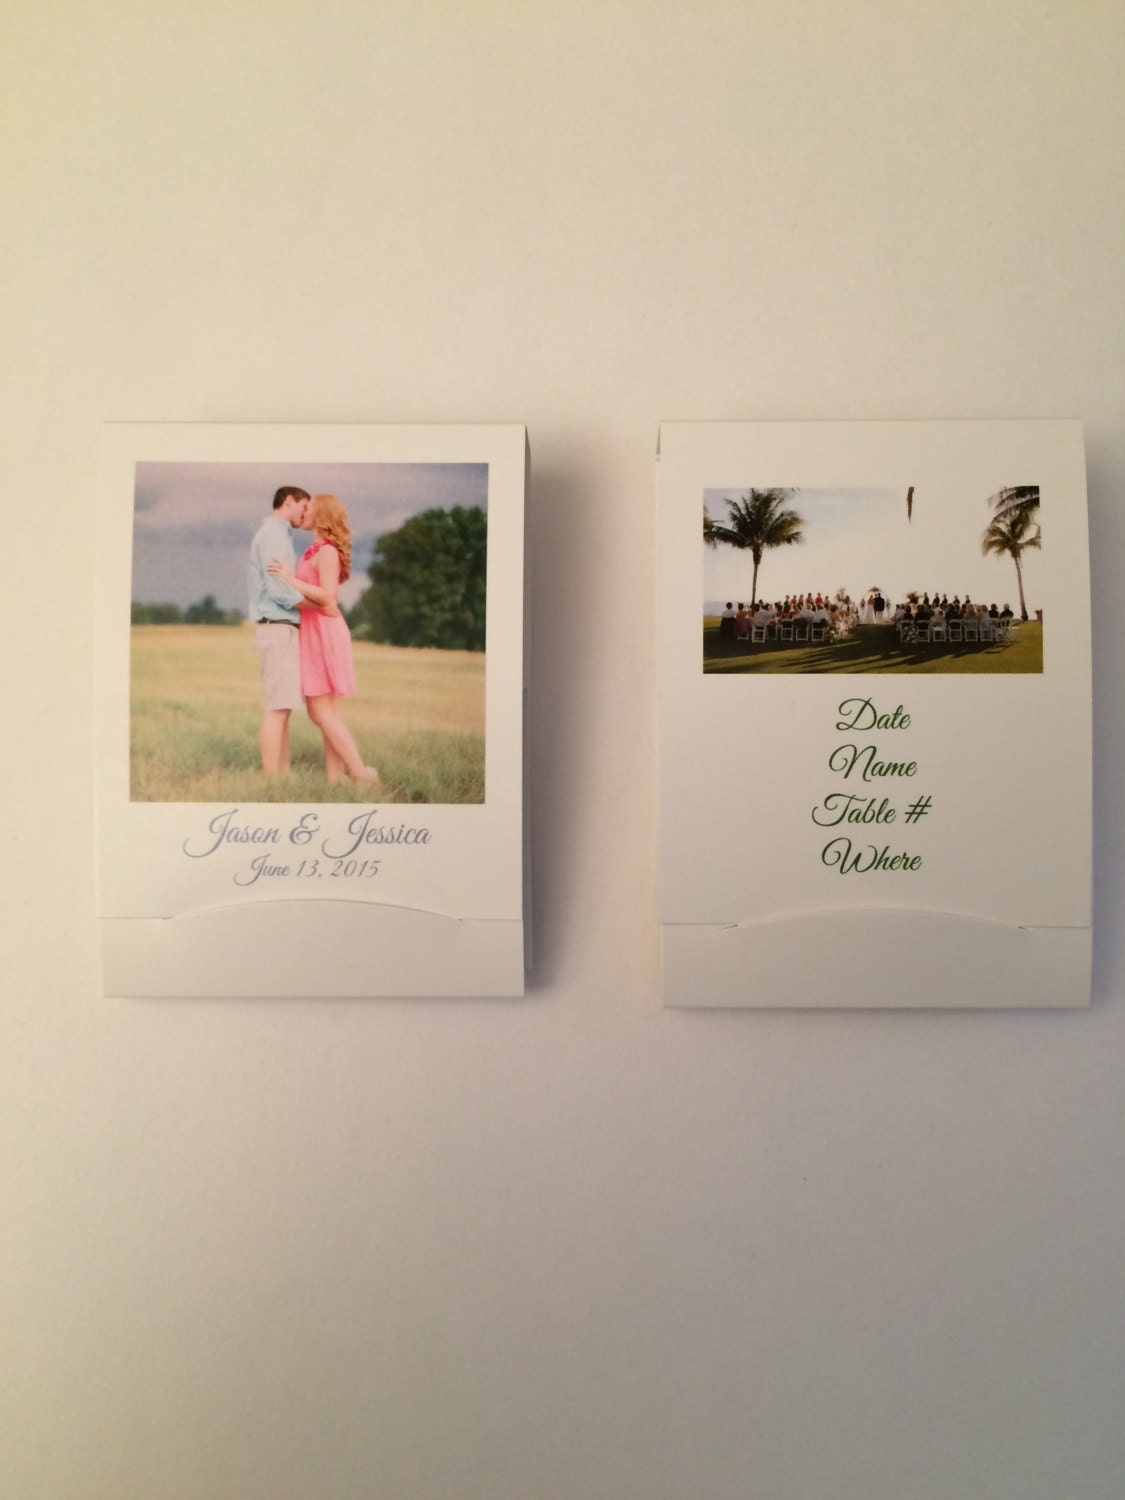 Teecil Custom Wedding Matchbooks Golf Tee And Pencil In One